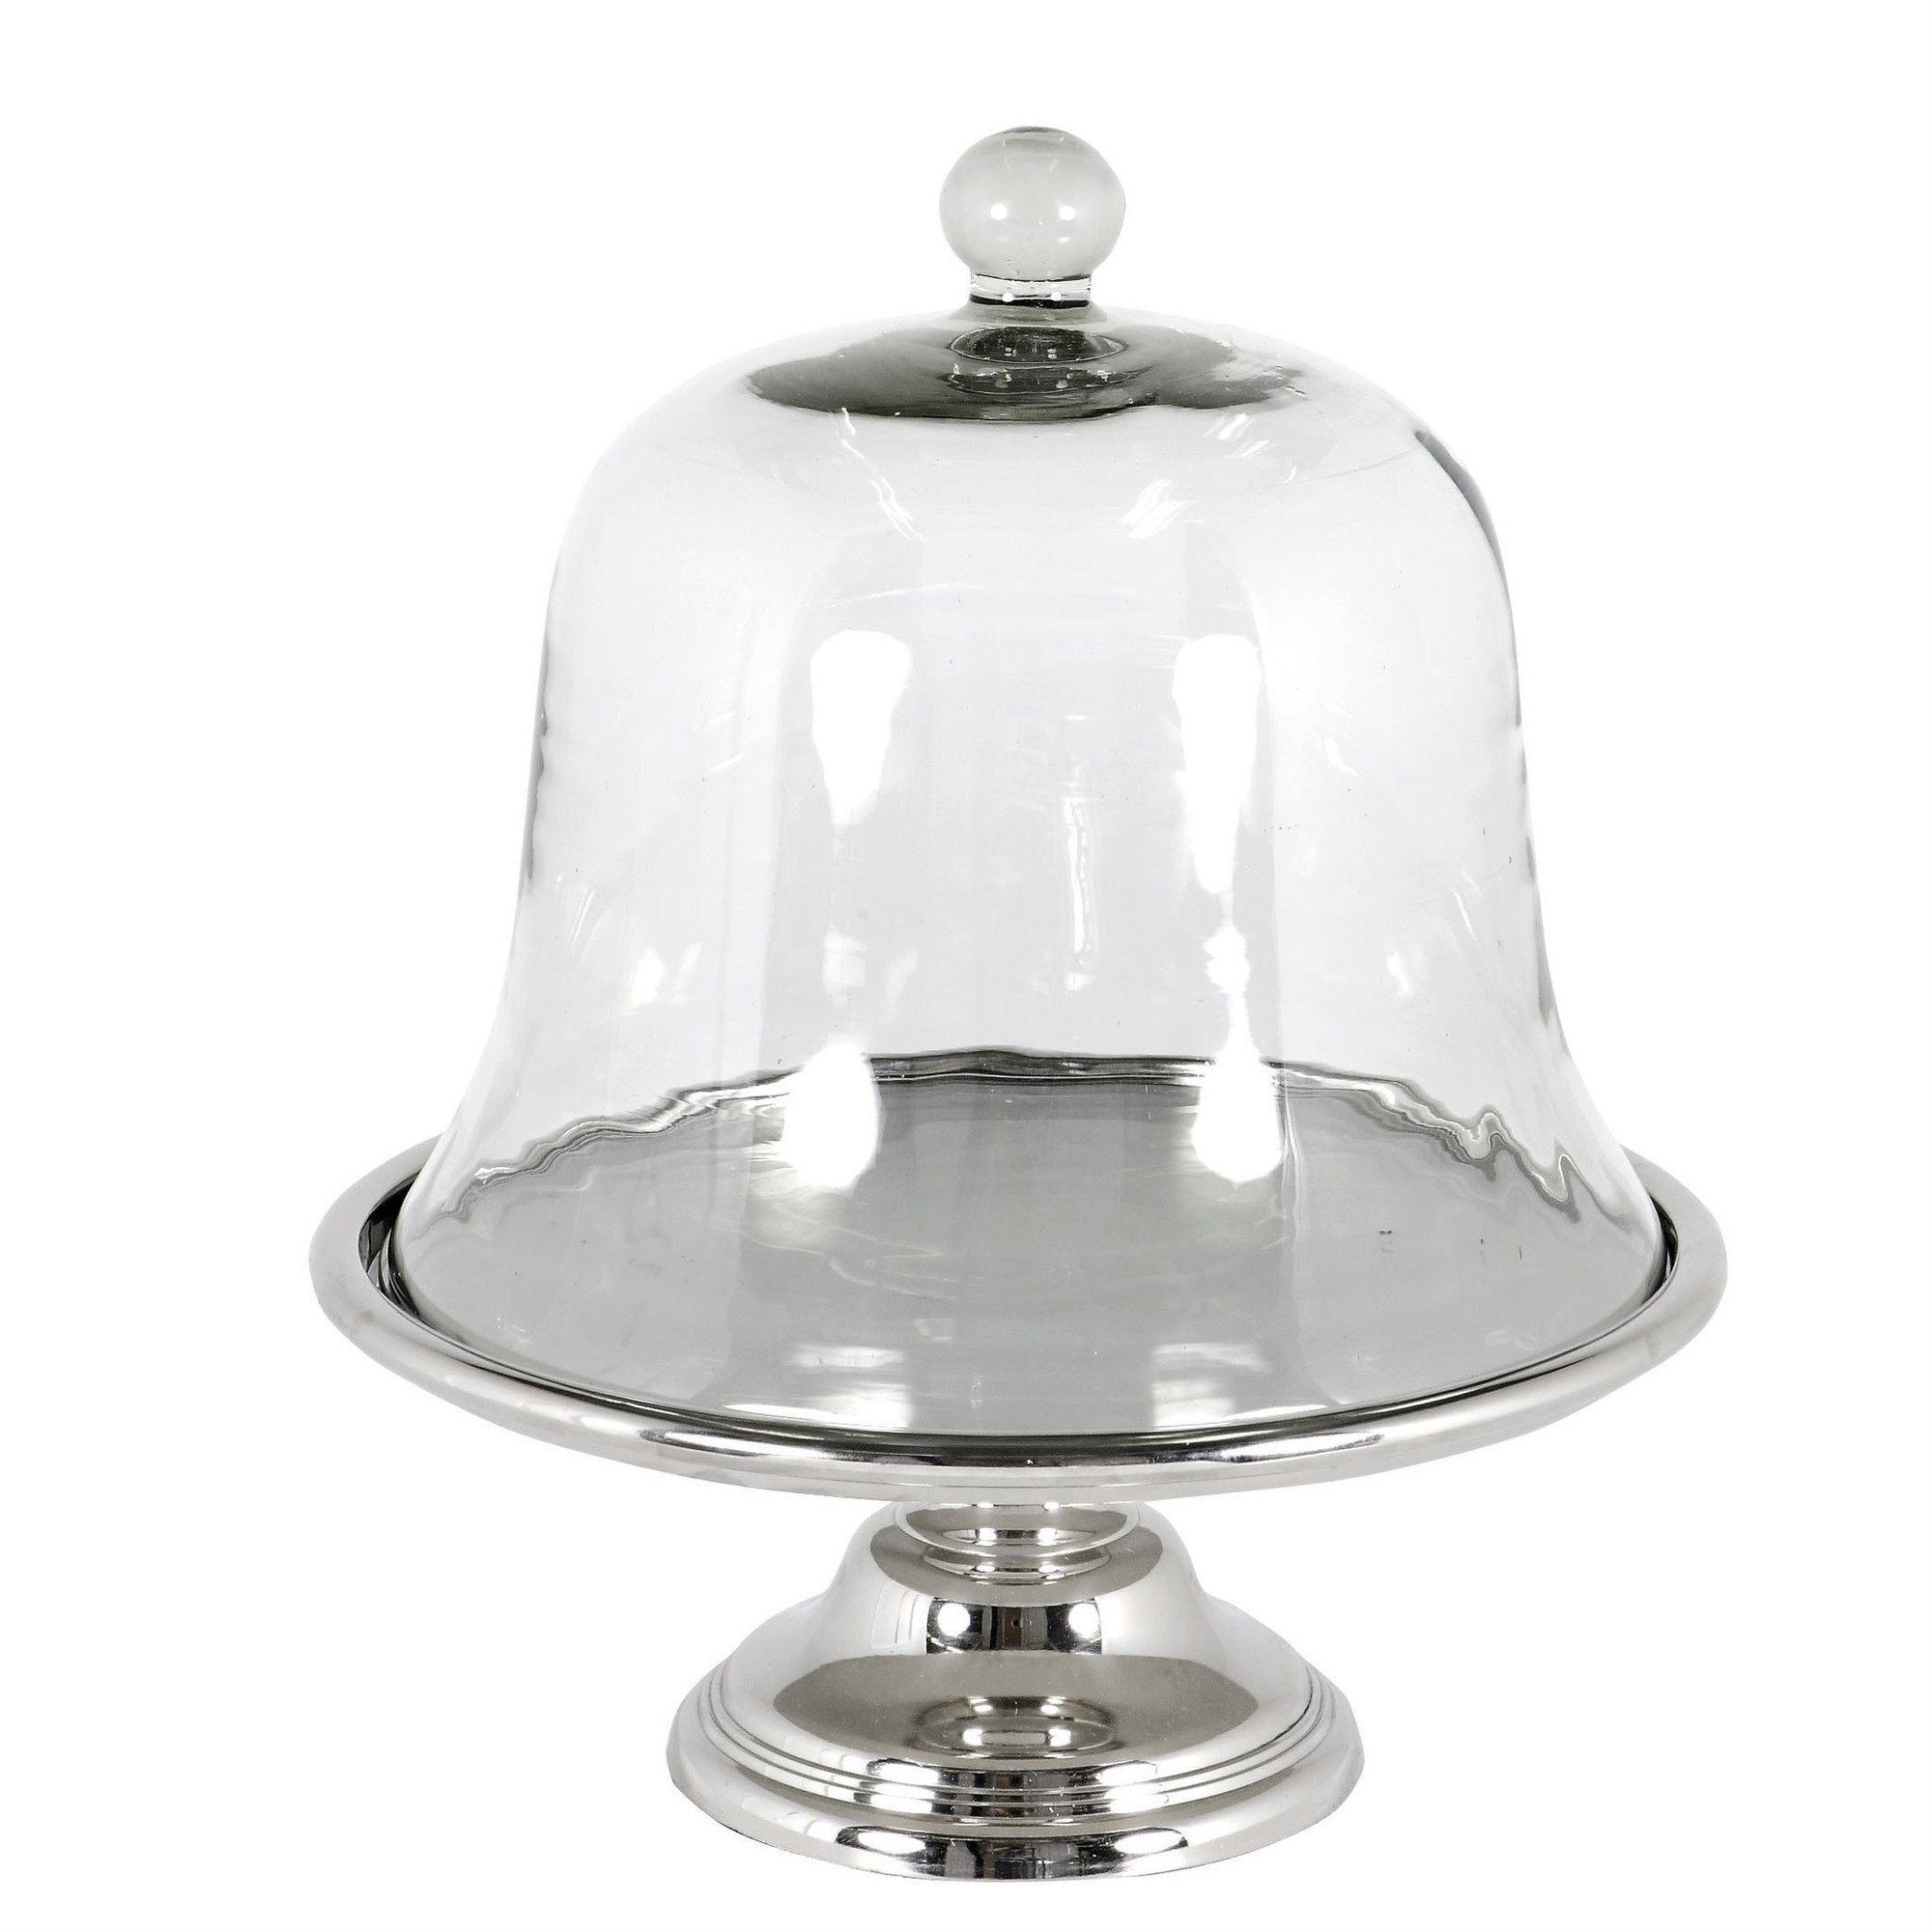 Glass cake stand eichholtz clear glass cake stand